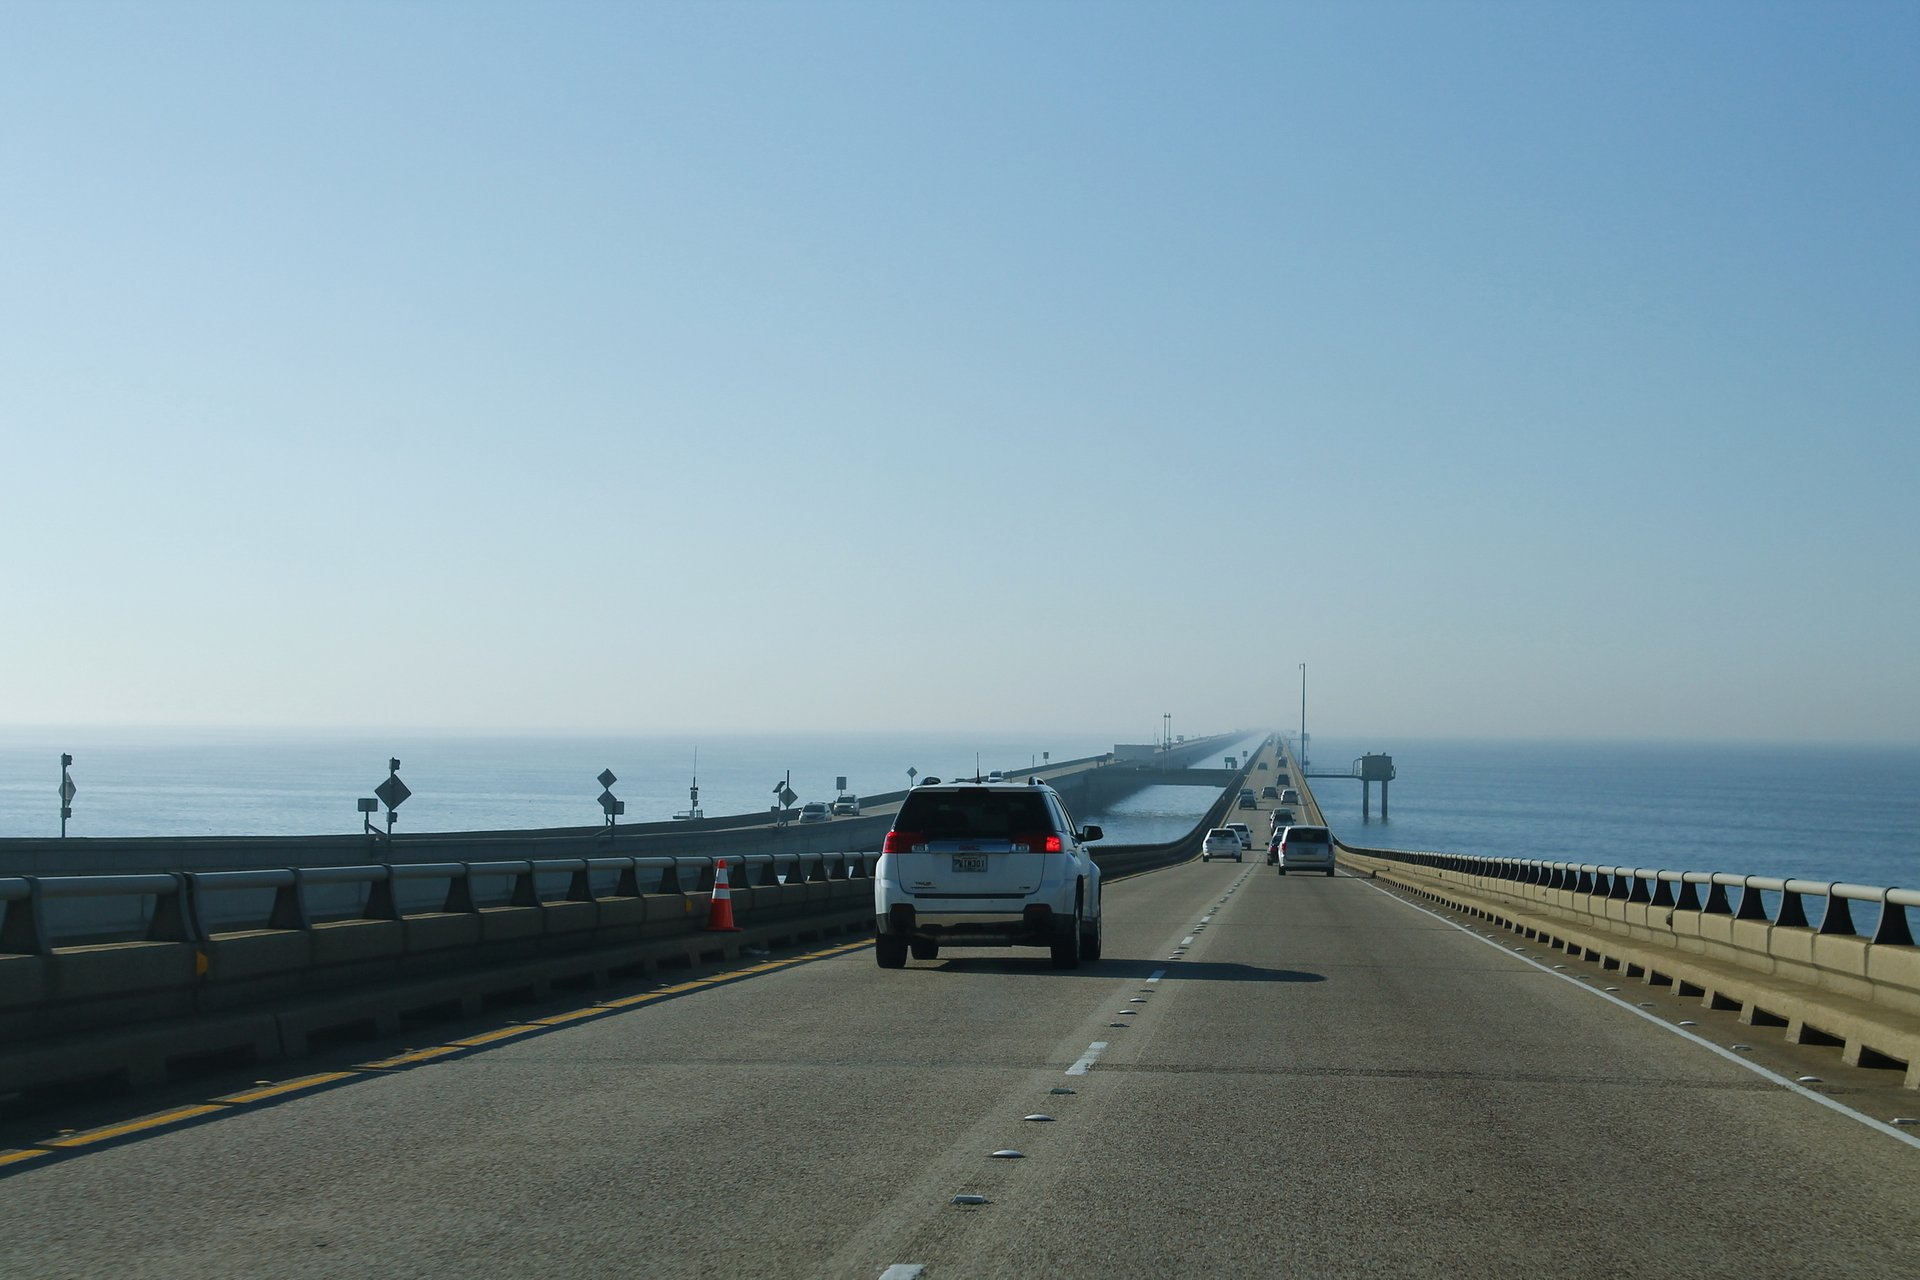 Lake Pontchartrain Causeway Bridge in New Orleans 2019 - Best Time